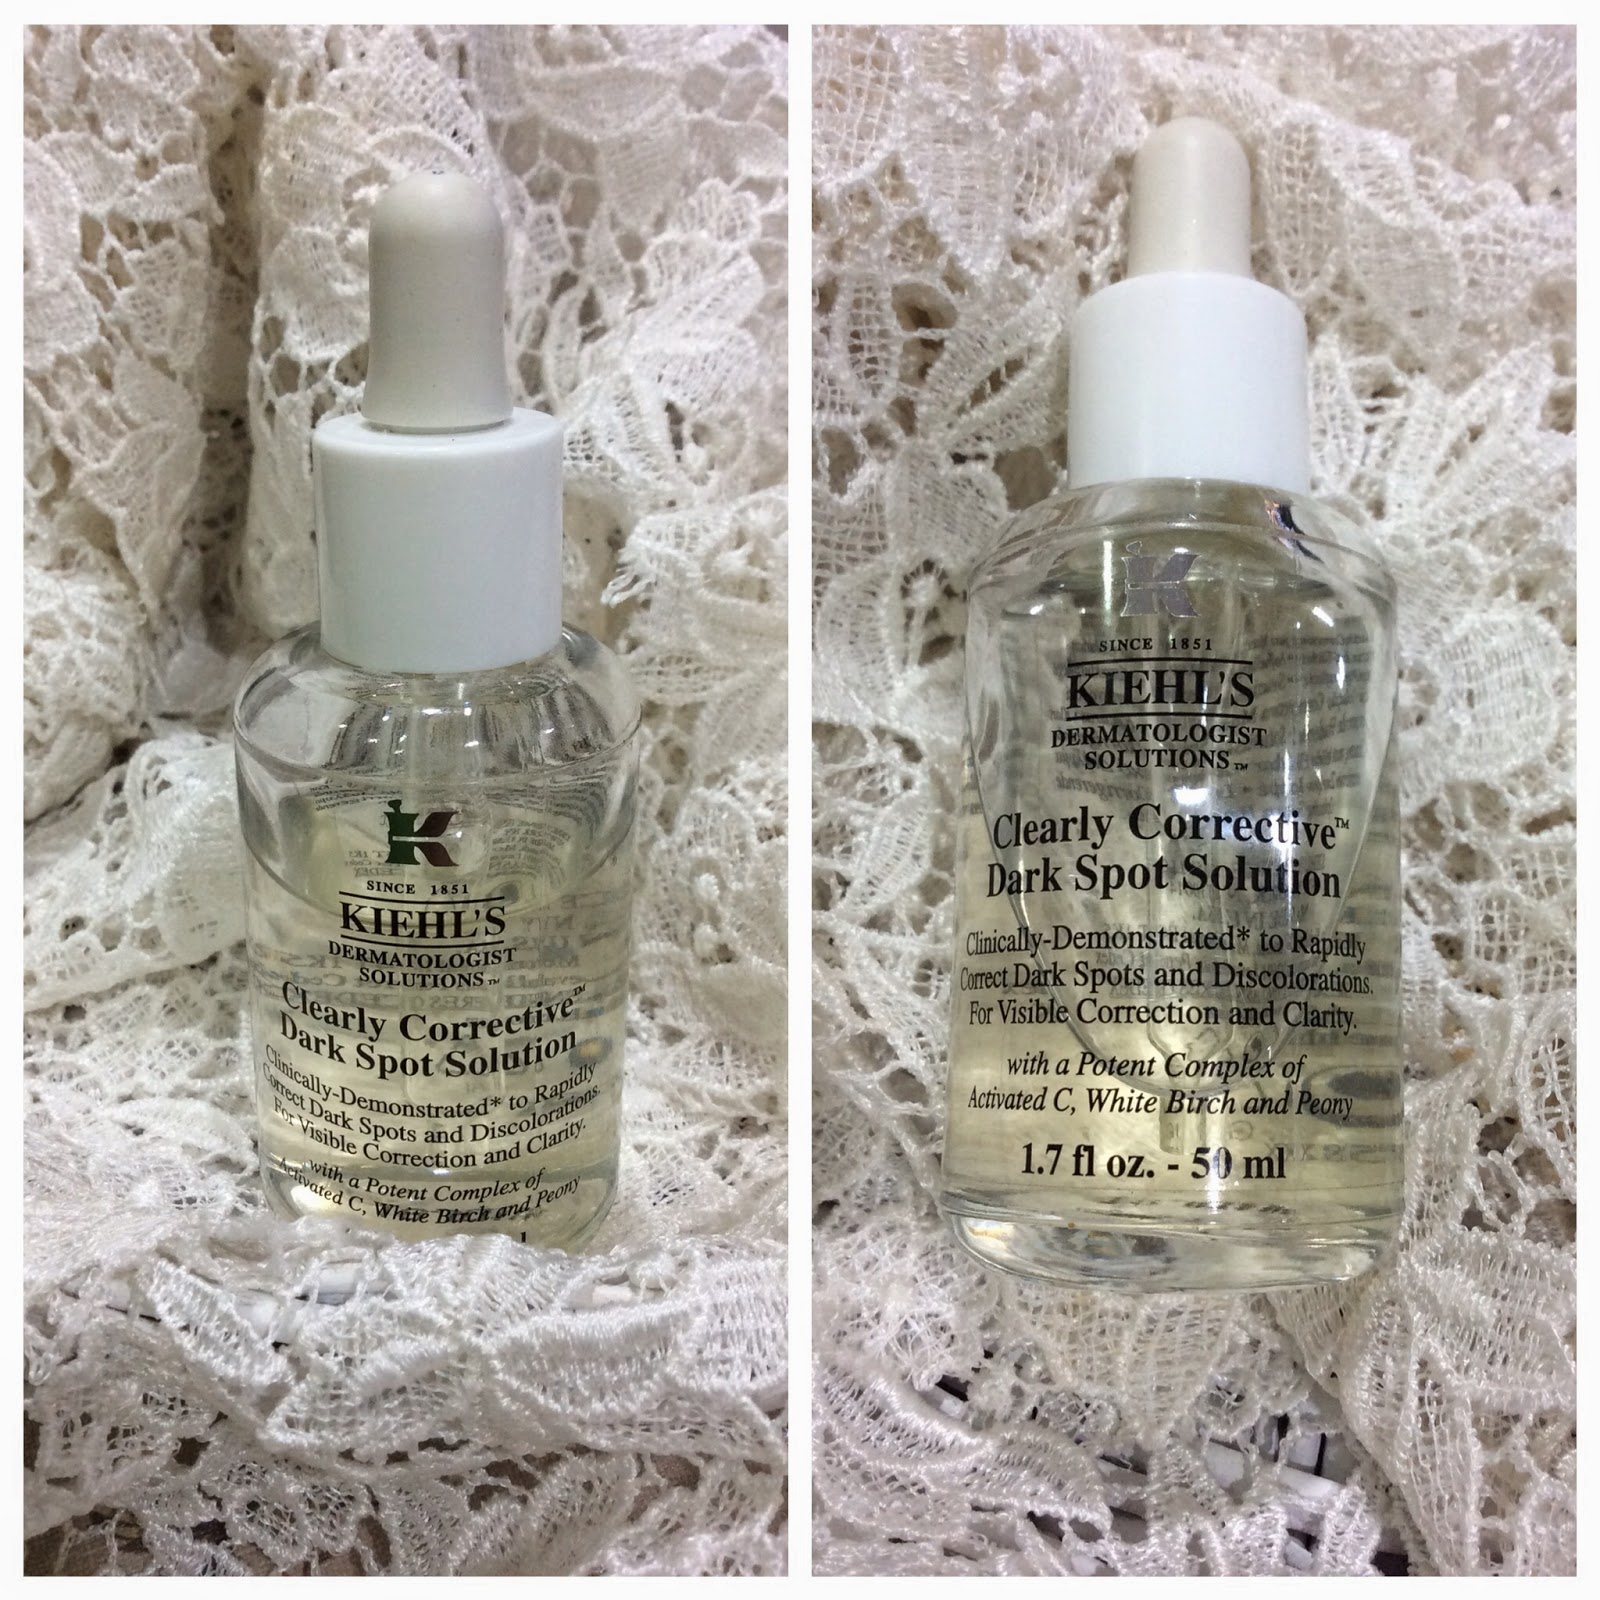 Blog Sale - Kiehls Clearly Corrective Dark Spot Solution